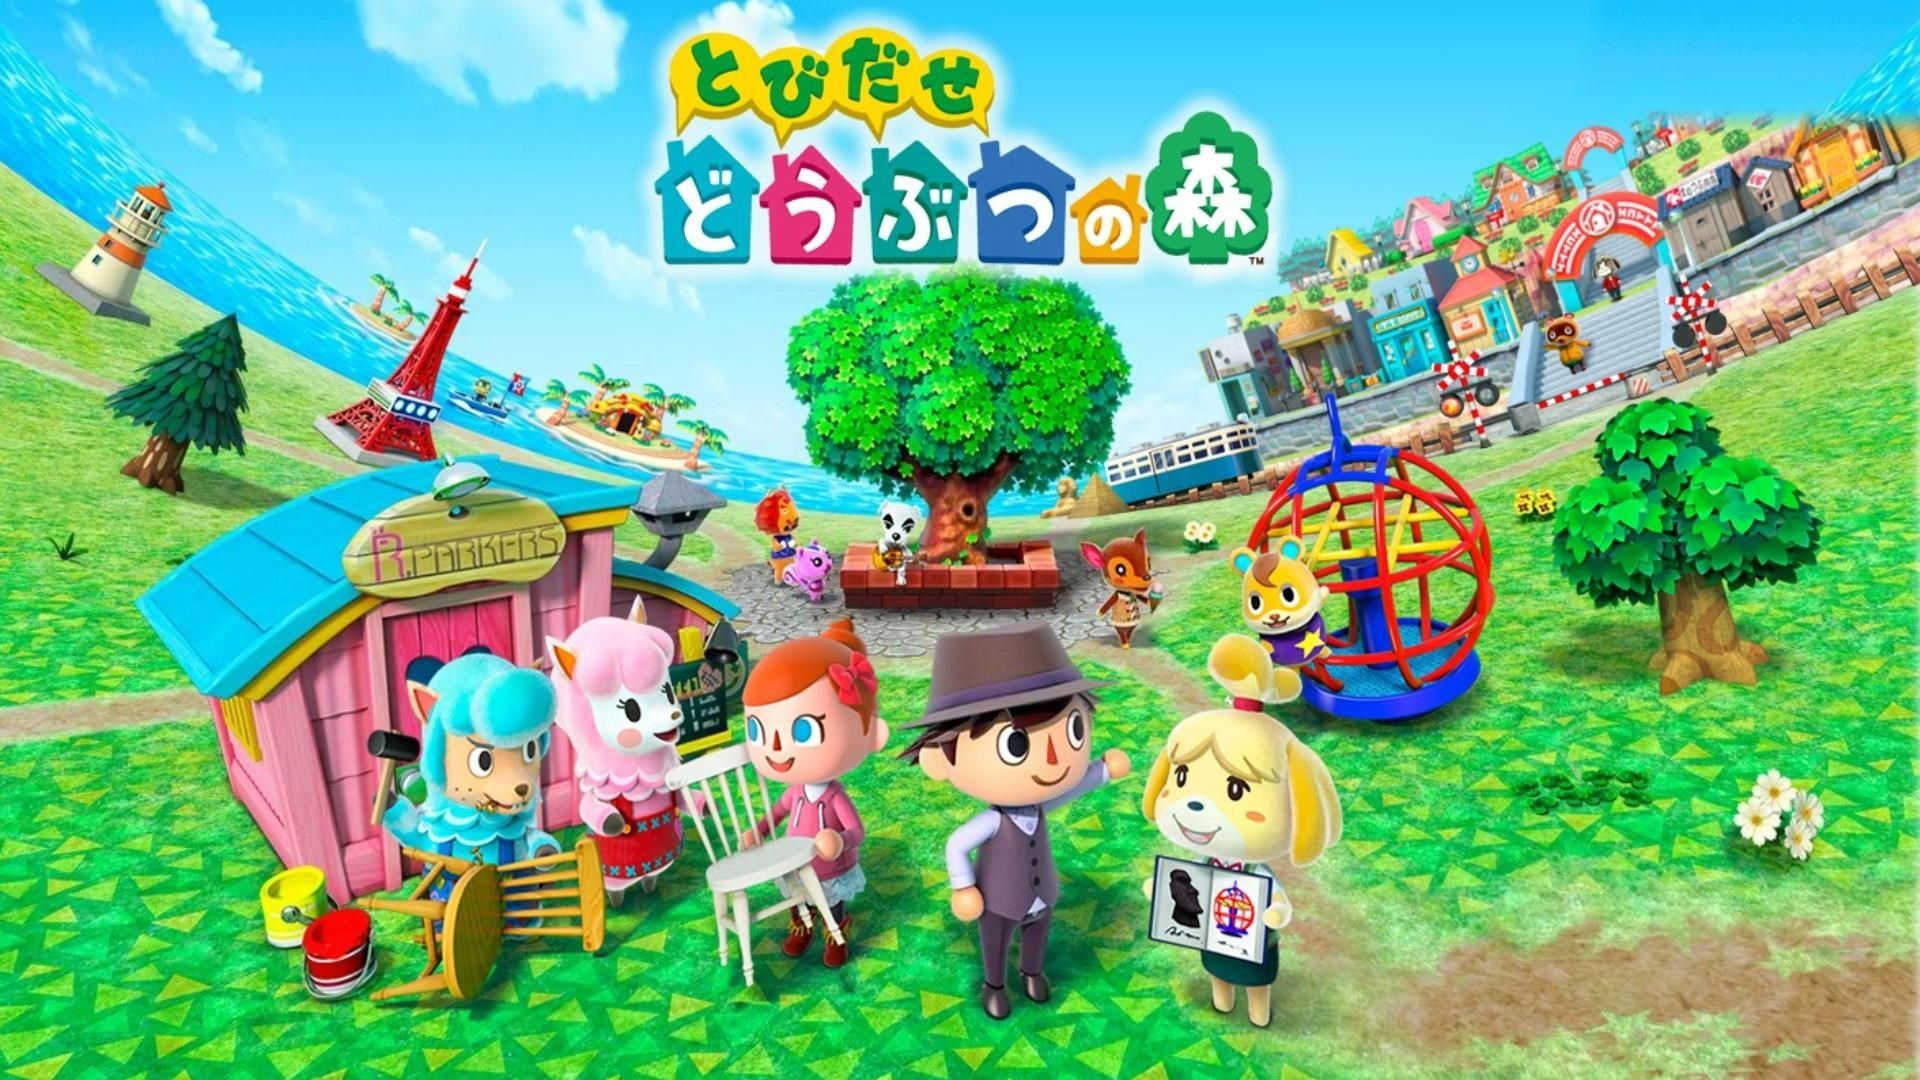 Res: 1920x1080, My First (Somewhat Shameful) Month With Animal Crossing: New Leaf Author:  Ryan Winslettpublished: